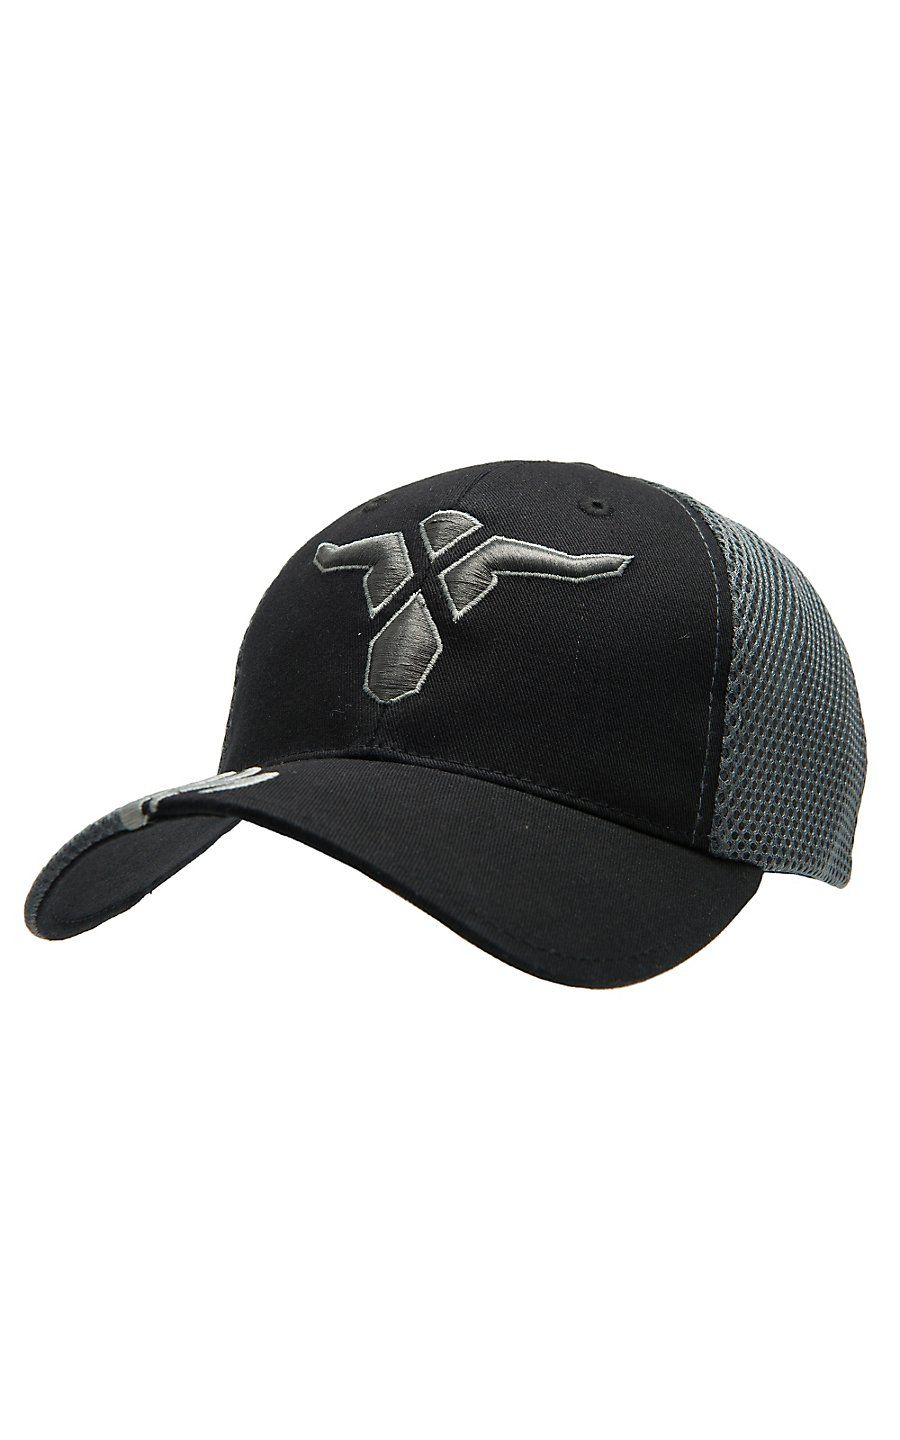 Wrangler 20X® Black   Grey with 20X Steer Logo Embroidery Flex Fit Cap 3c2618c69a5